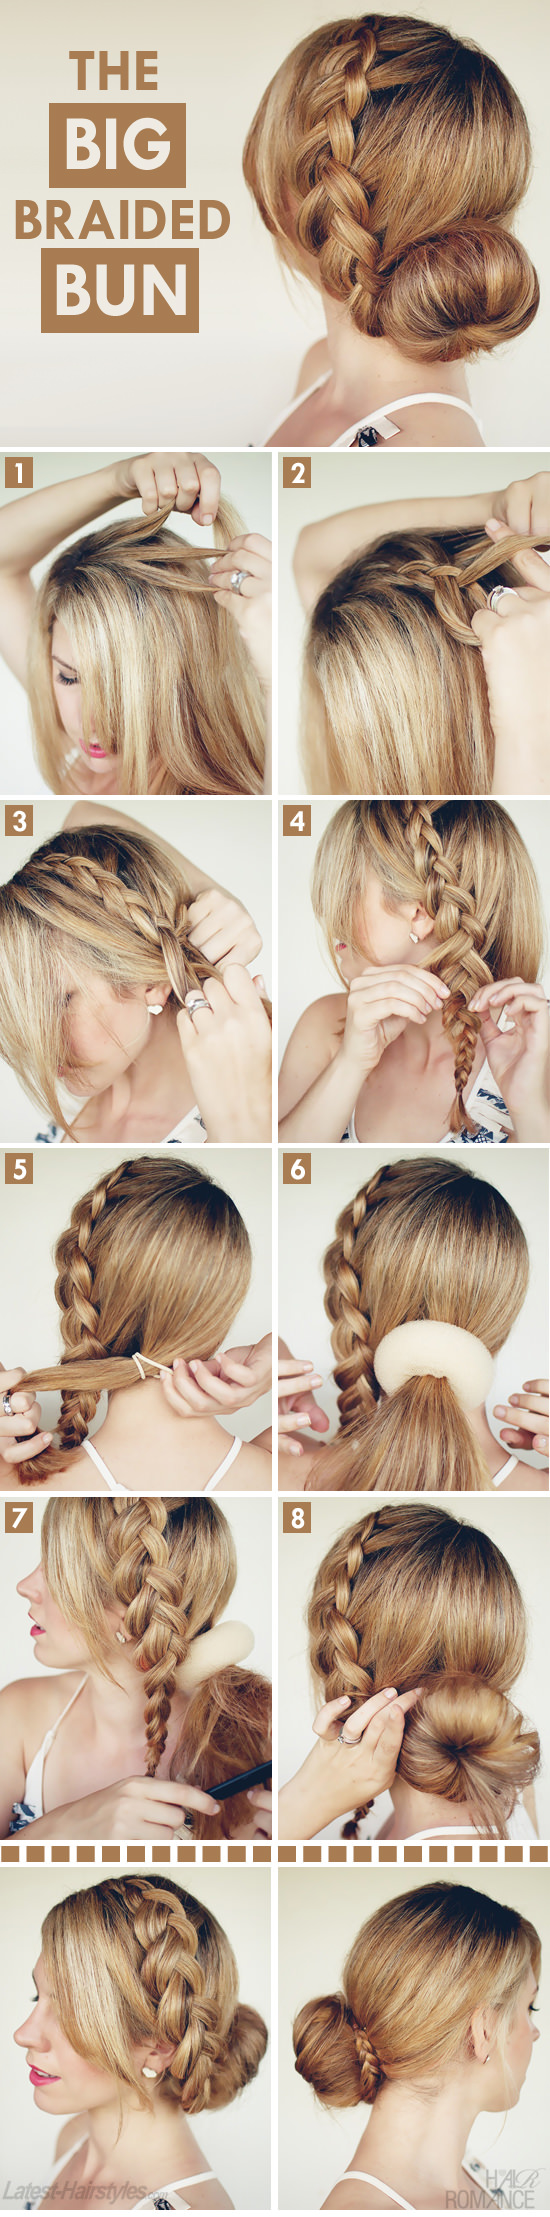 Big Braided Bun Hair Tutorial On Latest Hairstyles Hair Romance